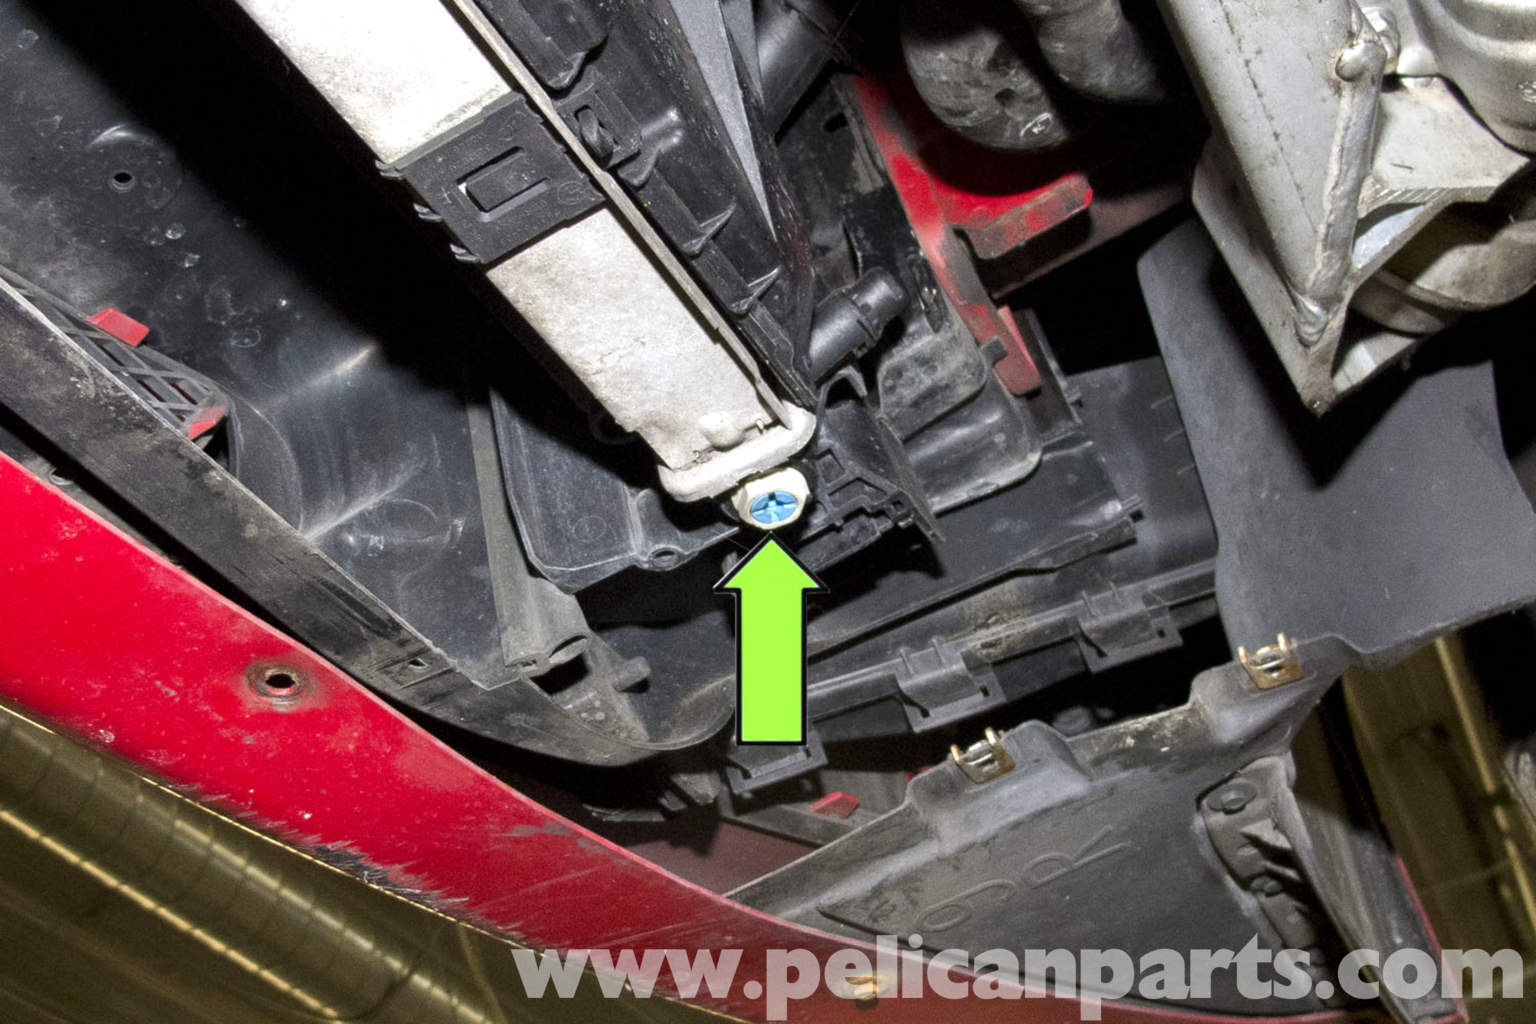 Bmw E90 Coolant Flush E91 E92 E93 Pelican Parts Diy Maintenance Article